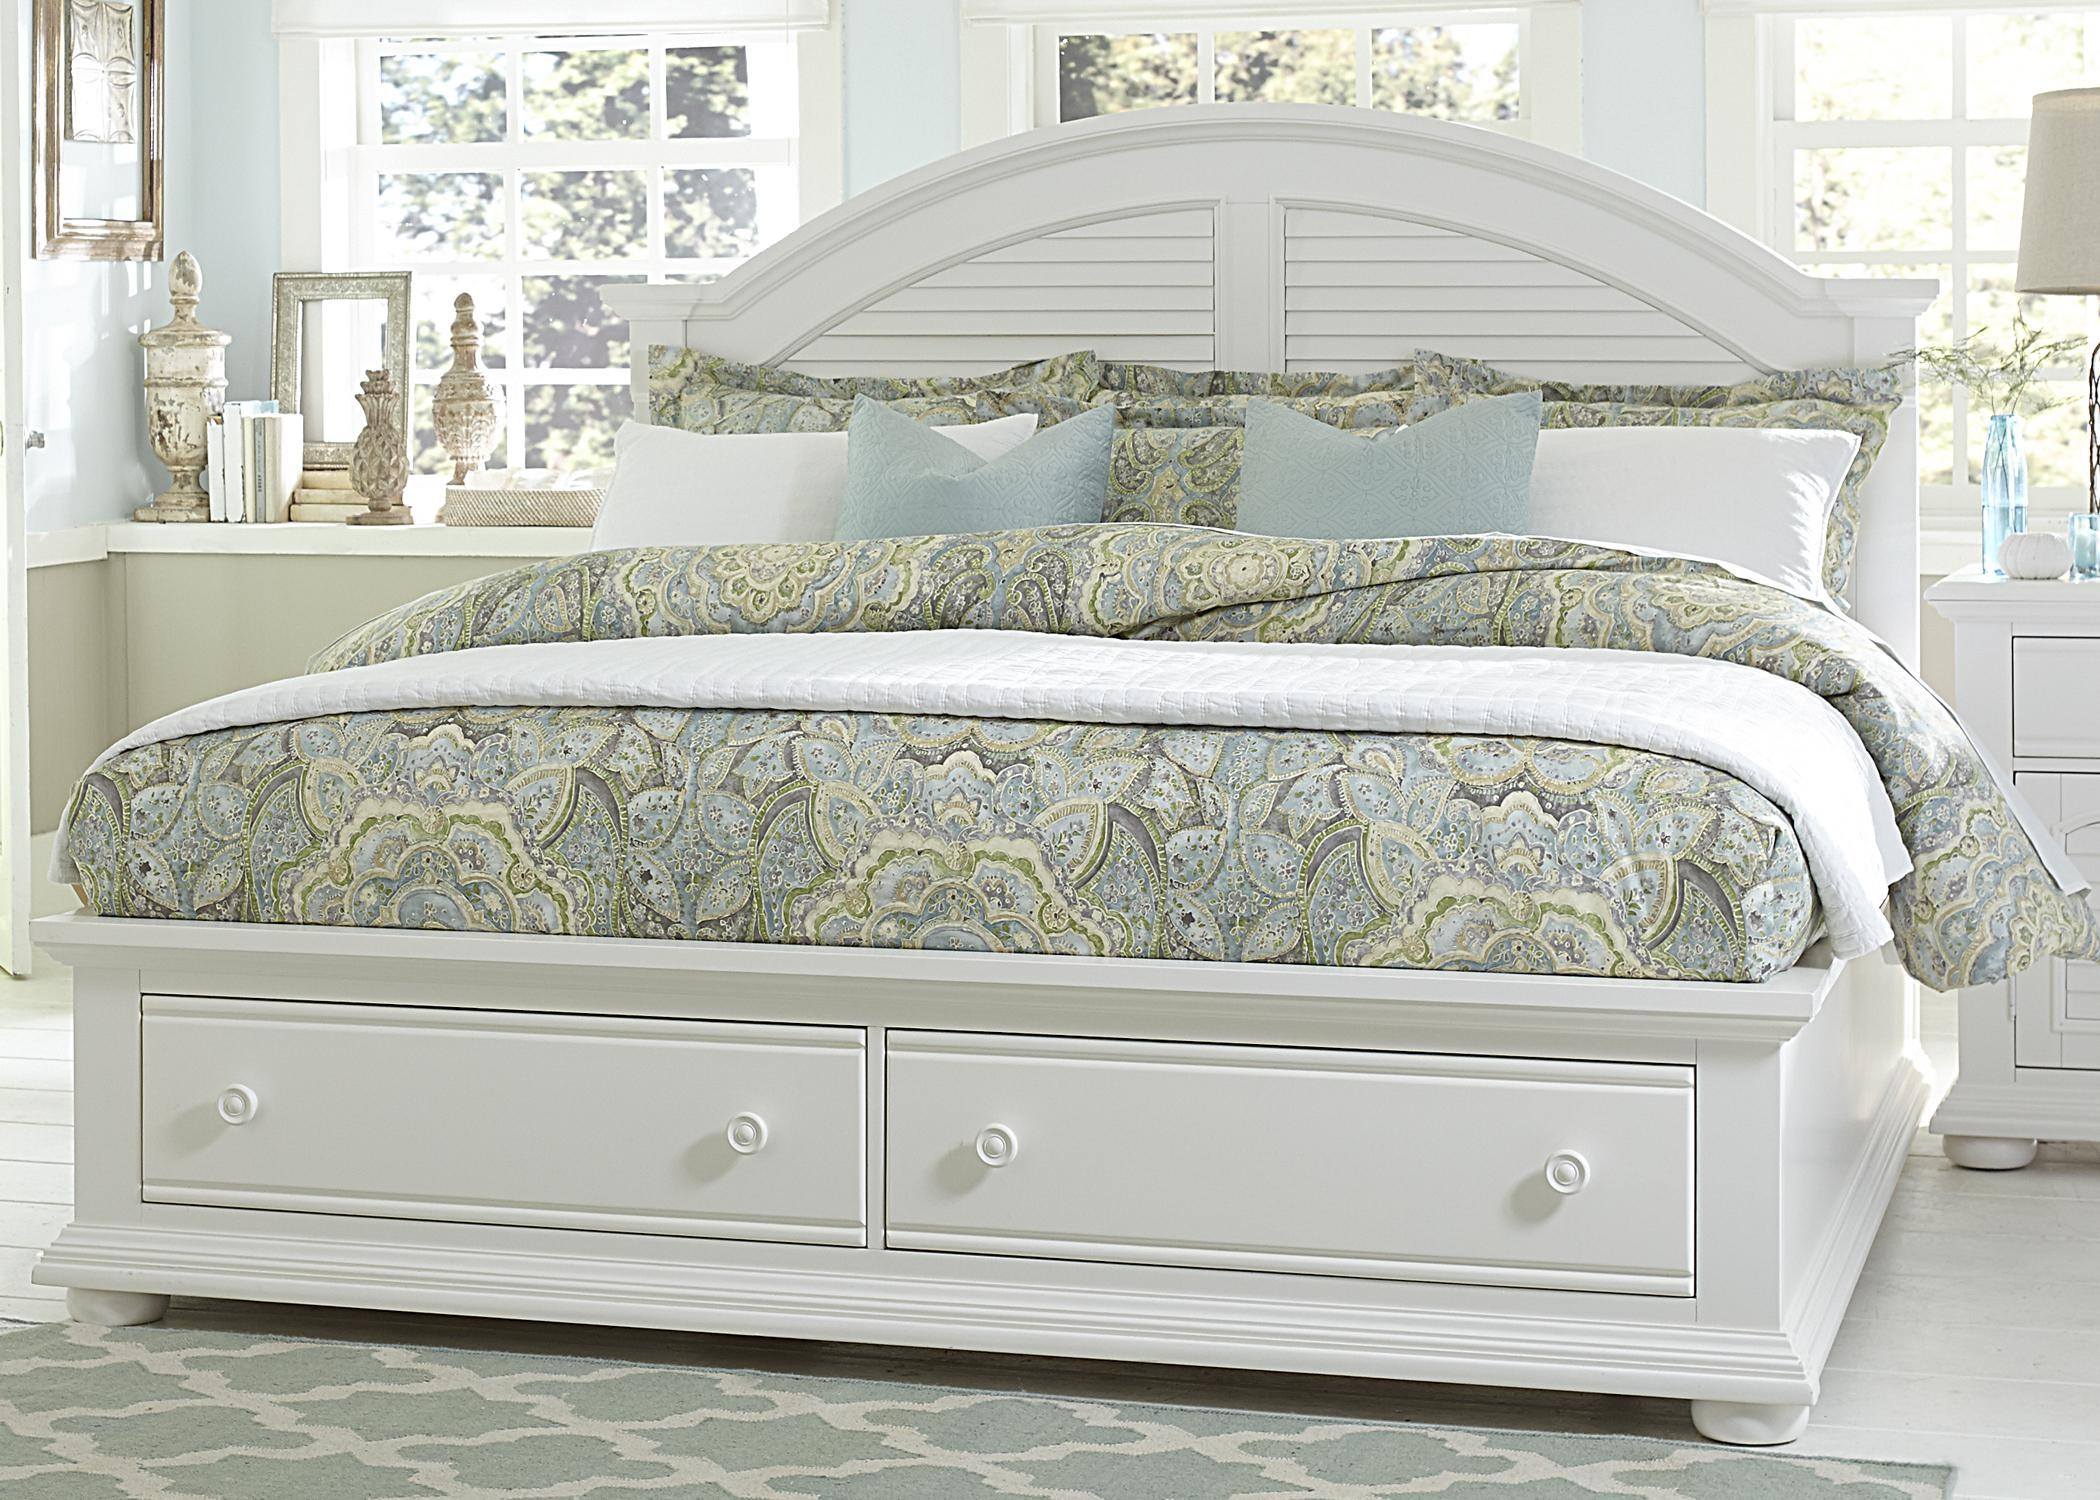 liberty furniture summer house 607 br qsb cottage queen bed with rh furnitureappliancemart com cottage queen bed set cottage queen bed set